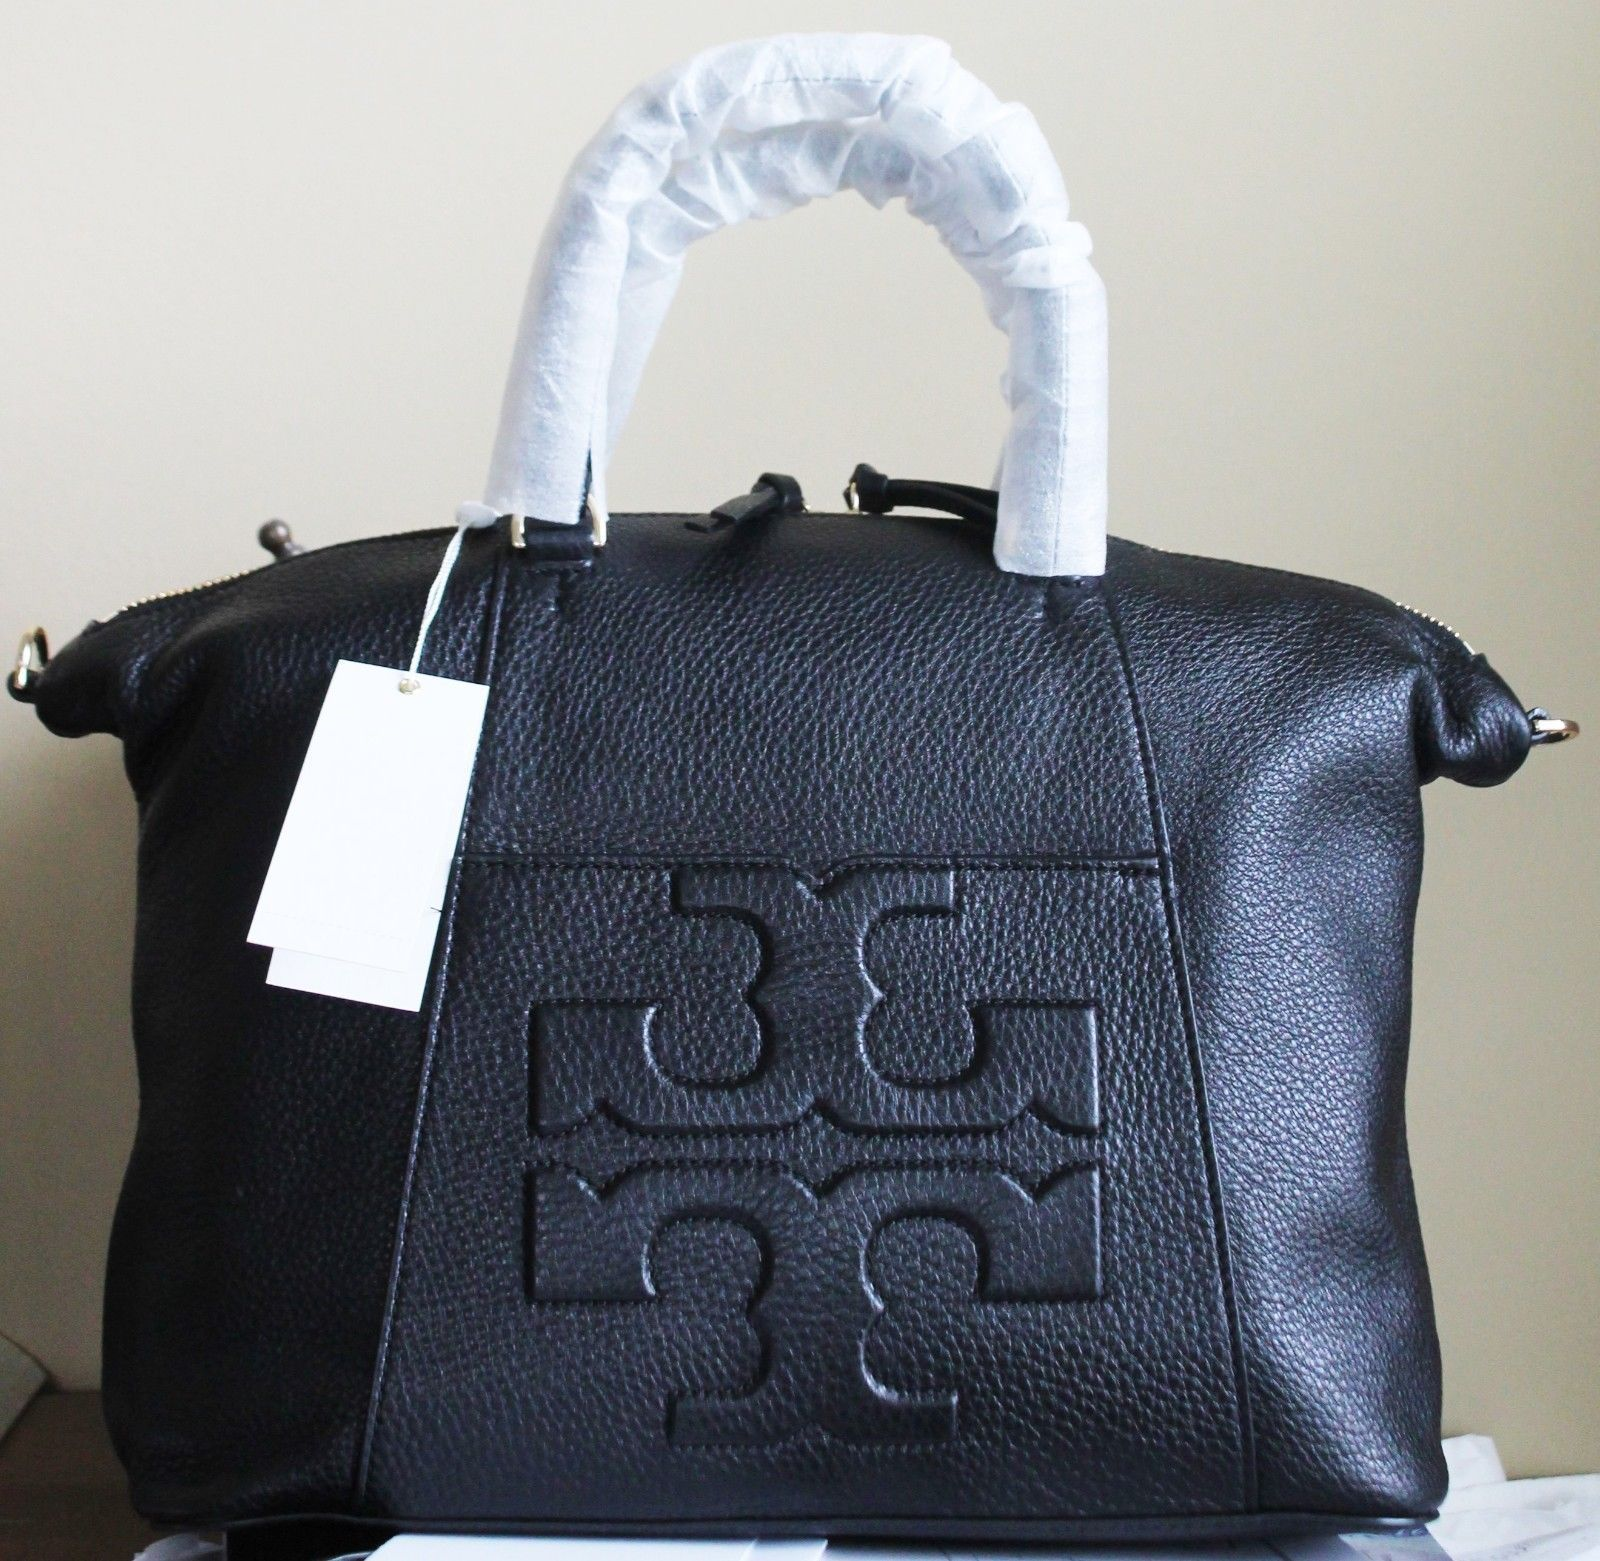 4468489c11c  495 TORY BURCH BOMBE T MEDIUM SLOUCHY SATCHEL TOTE SHOULDER BAG BLACK  LEATHER